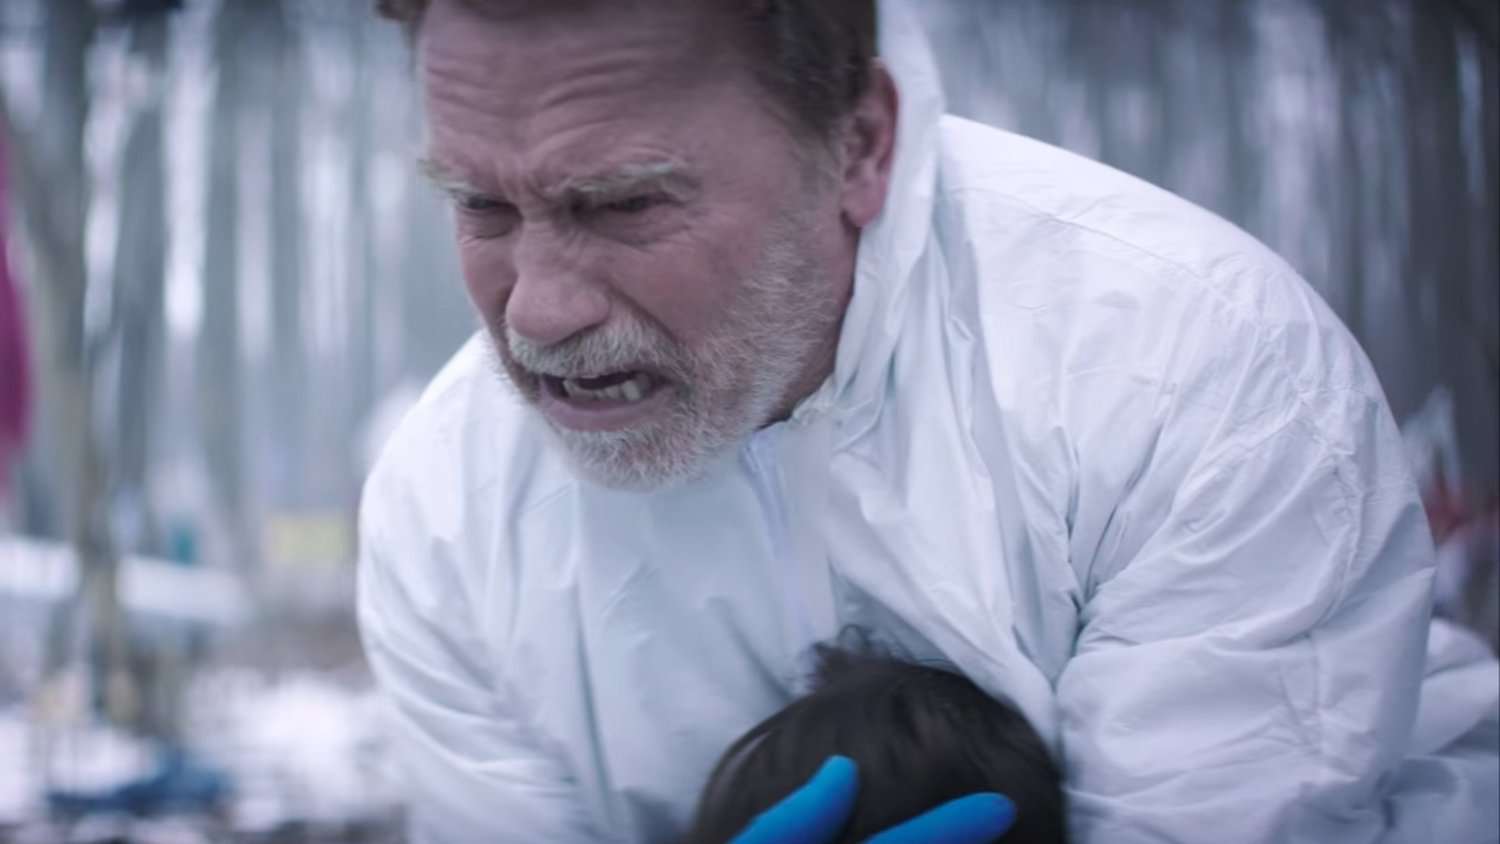 Arnold Schwarzenegger Is Hell-Bent on Getting an Apology in Trailer for Darren Aronofsky's AFTERMATH